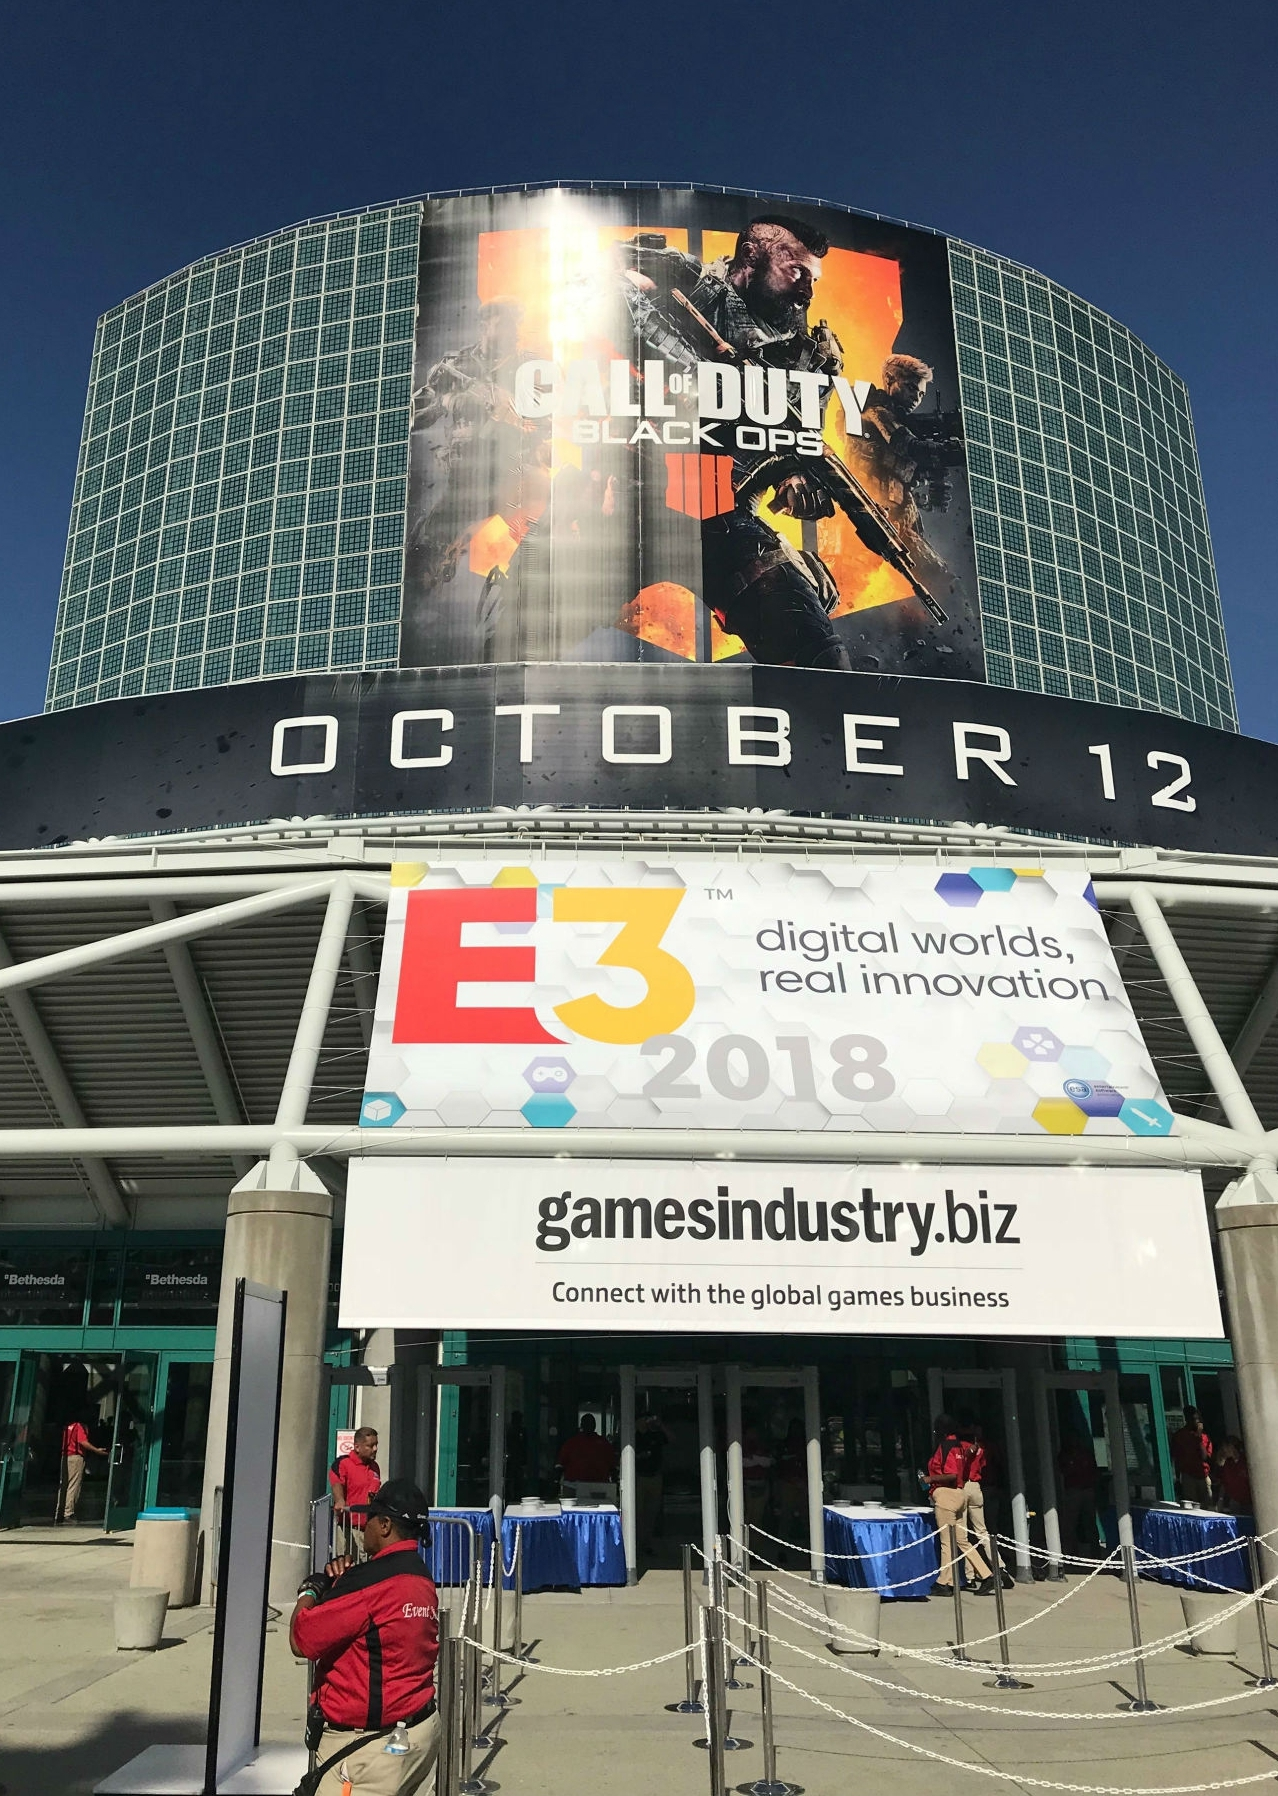 E3 2018: Every major announcement and release date | GamesIndustry biz